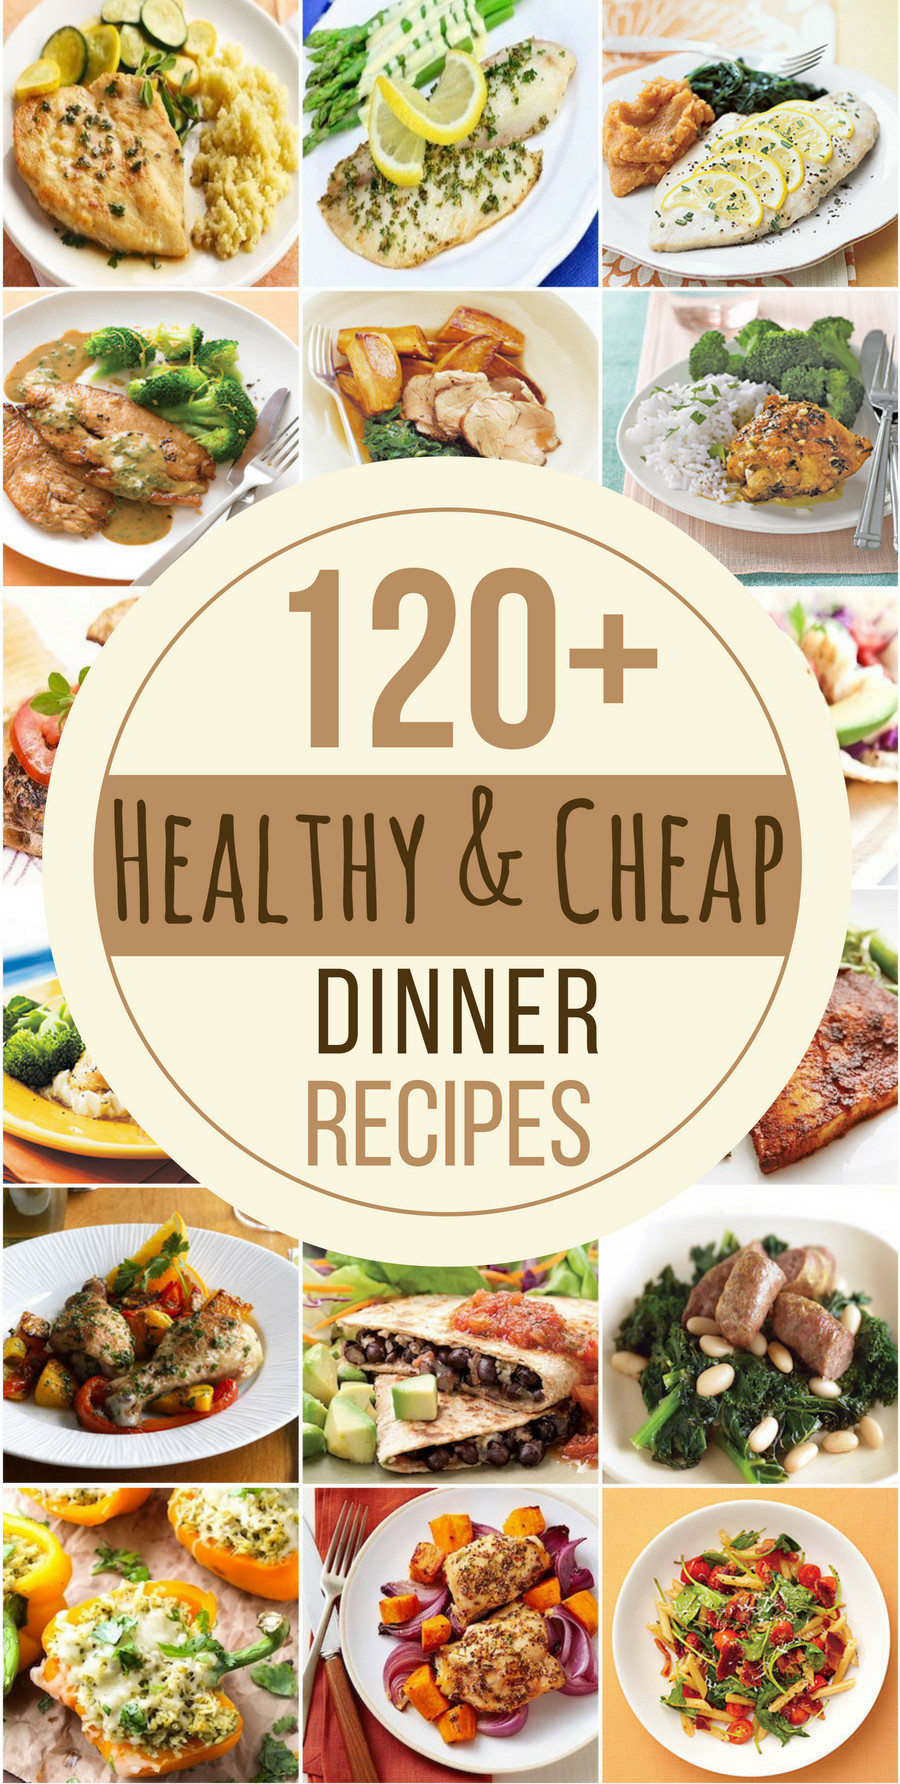 Inexpensive Healthy Dinners  120 Healthy and Cheap Dinner Recipes Prudent Penny Pincher